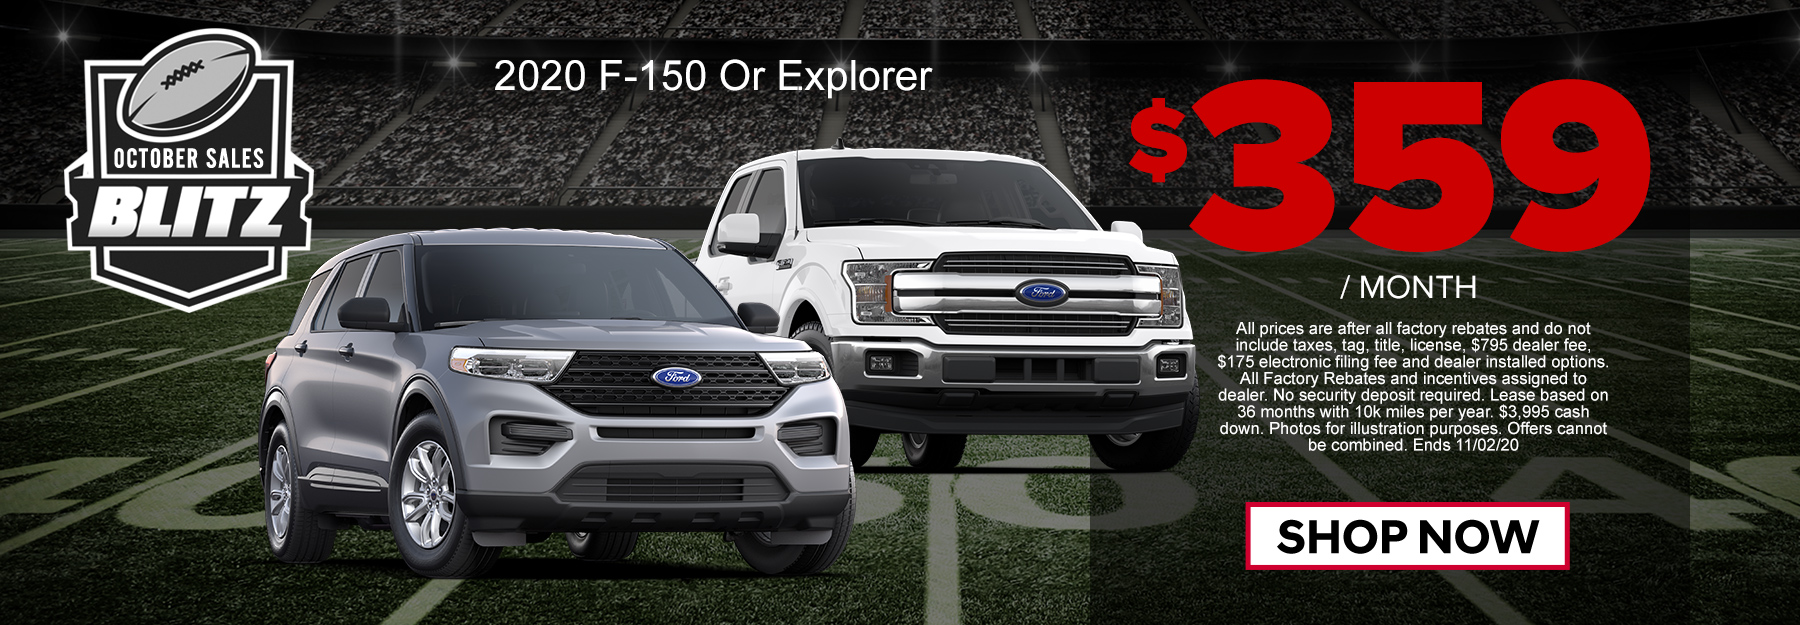 Your Choice! F150 of Exlorer $359/mo